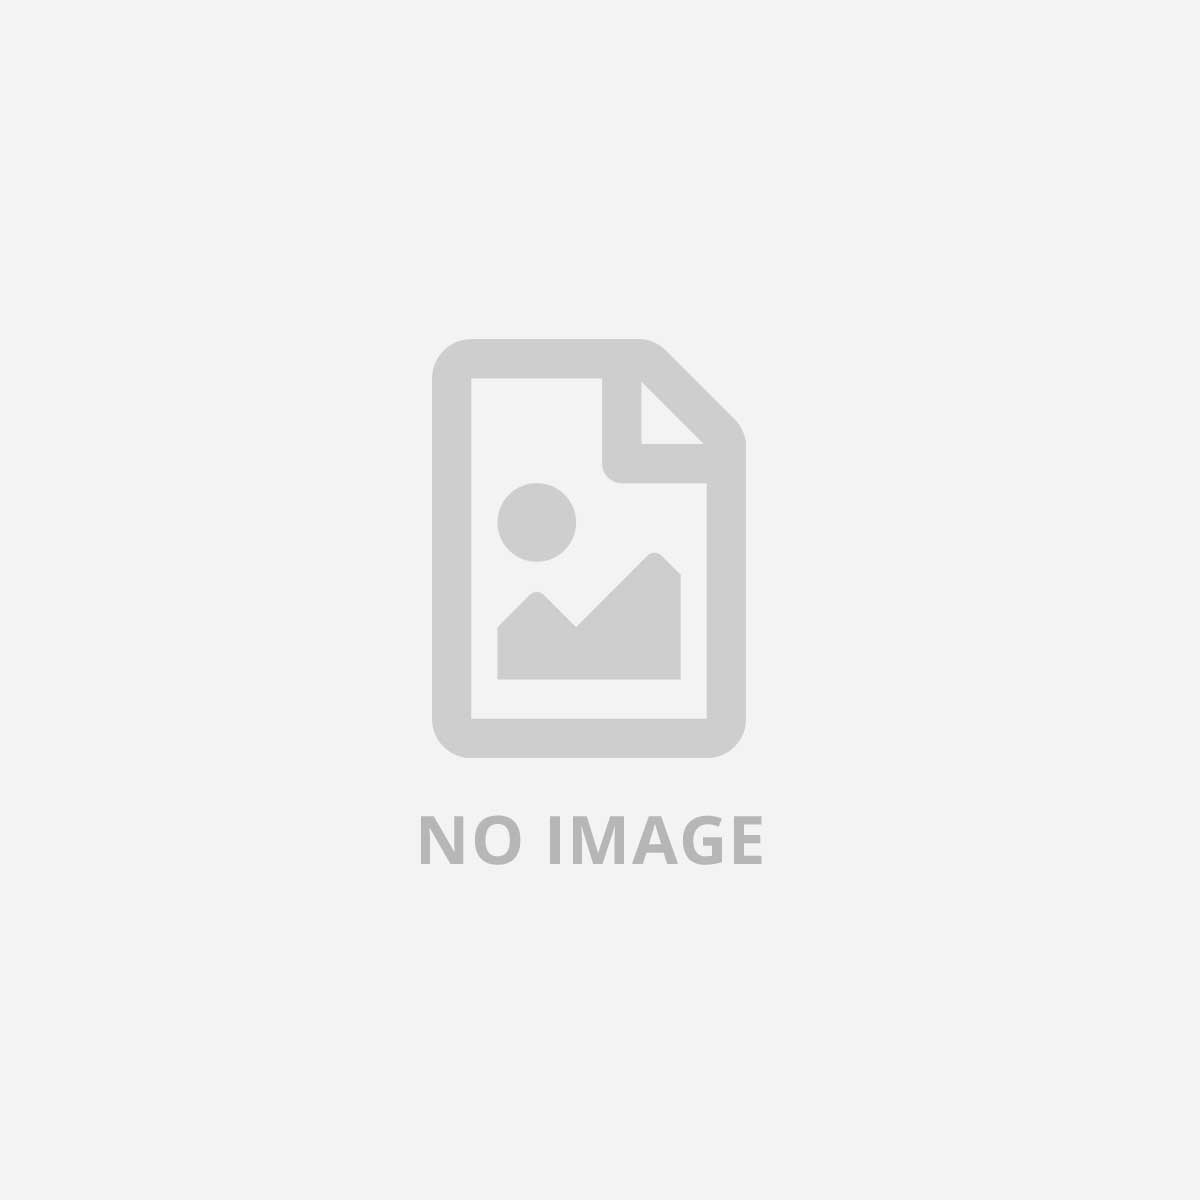 KOCH MEDIA PC FINAL FANTASY XIV STARTER ED